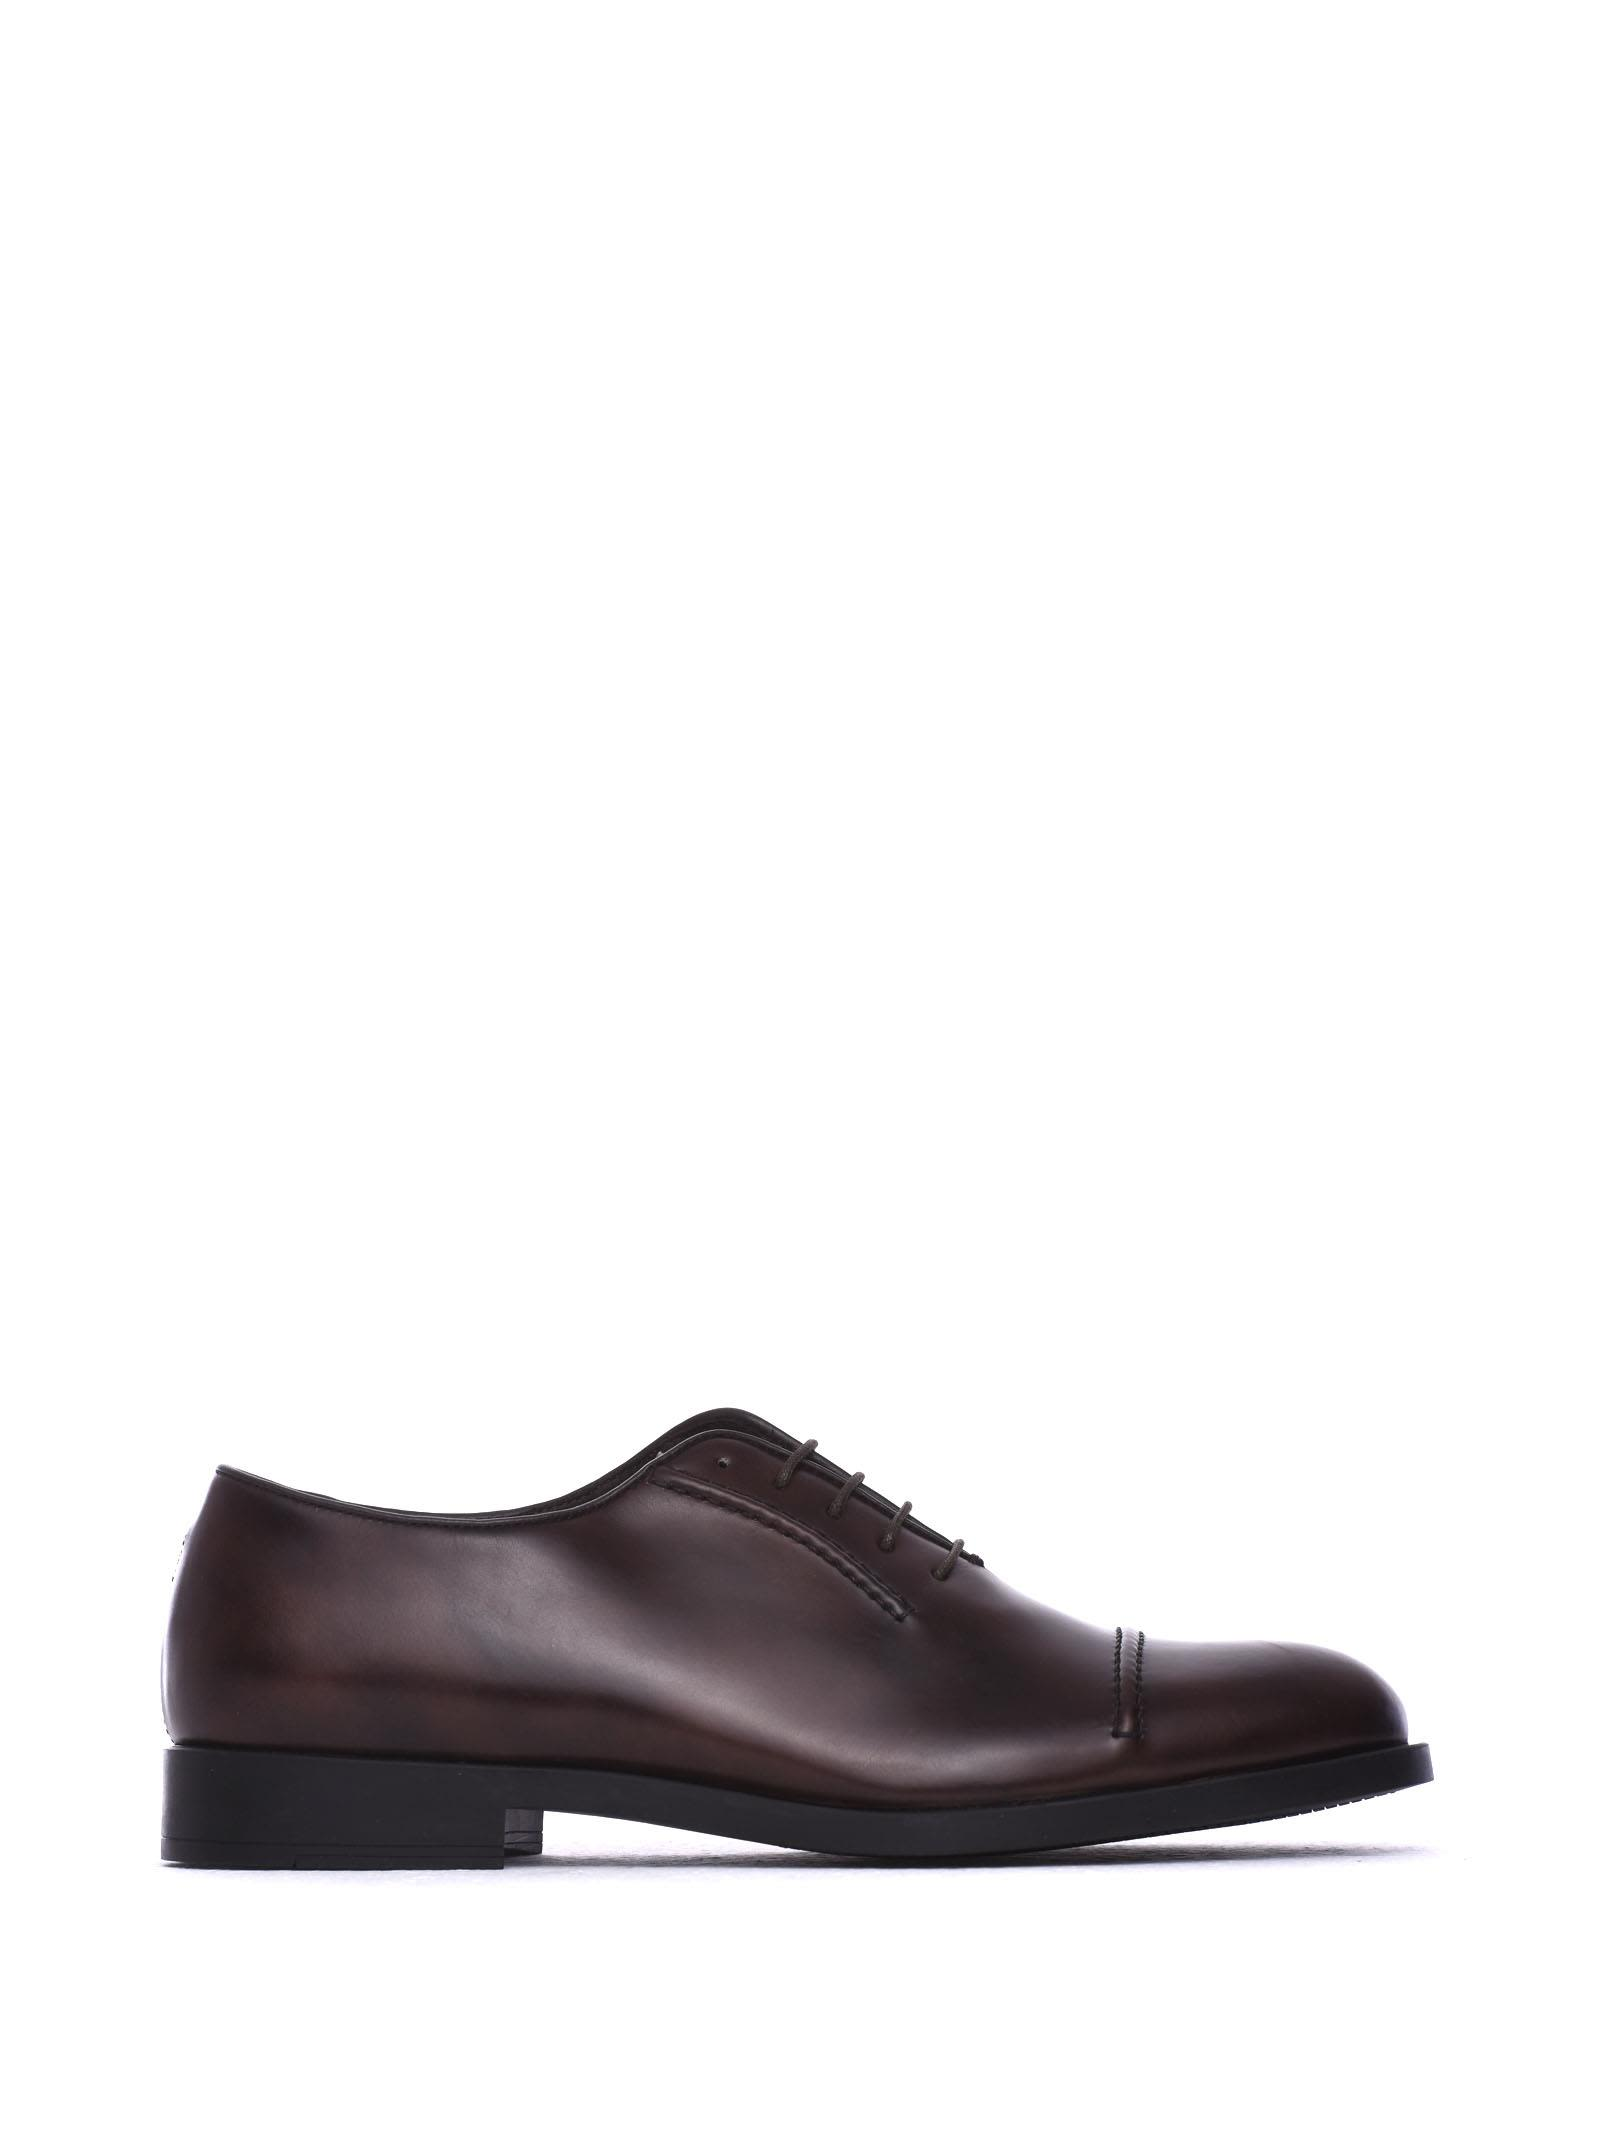 FRATELLI ROSSETTI ONE Lace-Up Dark Brown Calf Leather Shoe in Ebano